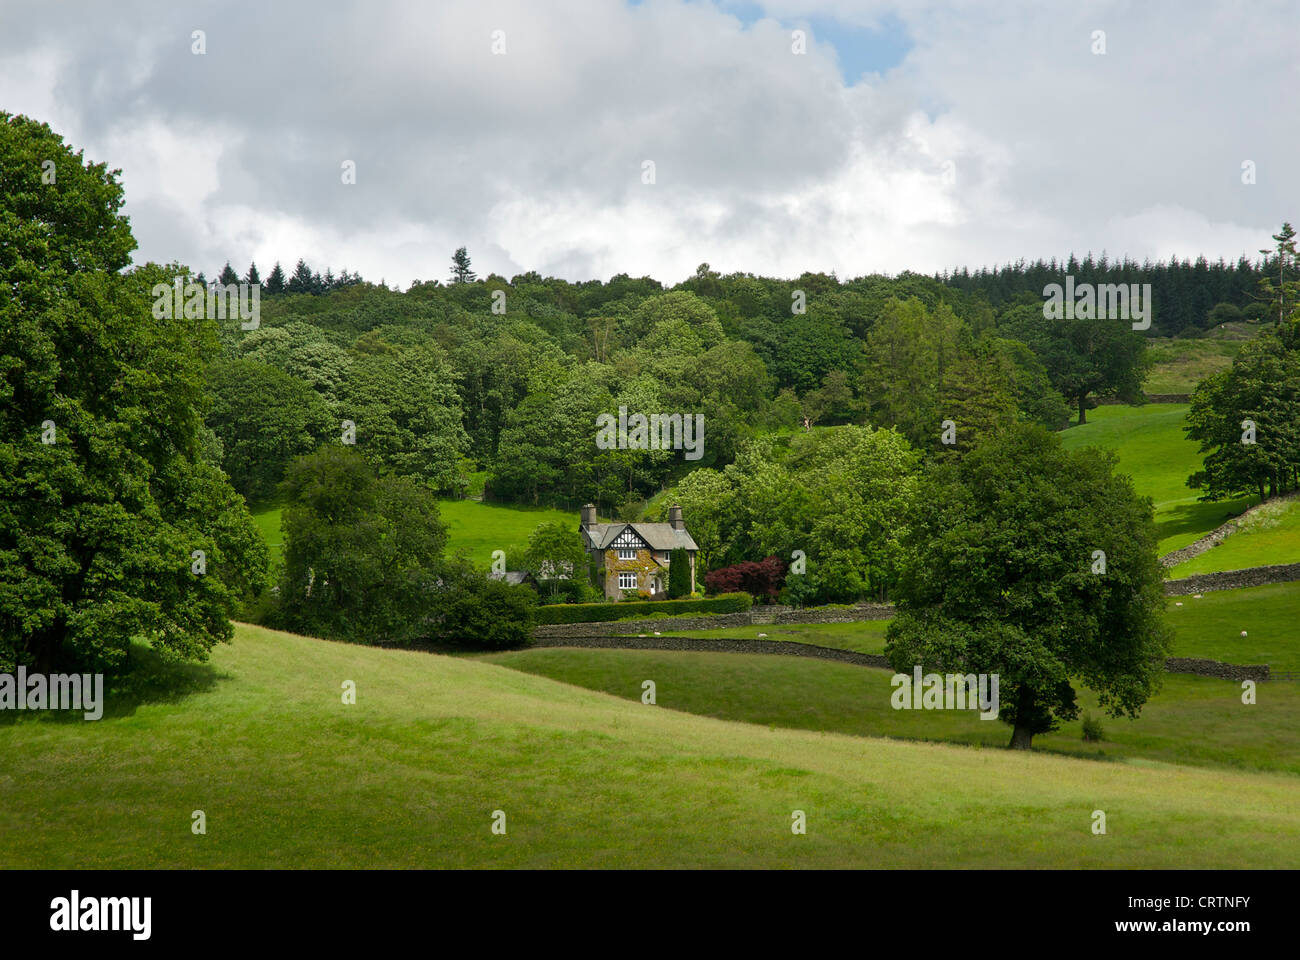 House and pasture near the village of Far Sawrey, Lake District National Park, Cumbria, England UK - Stock Image